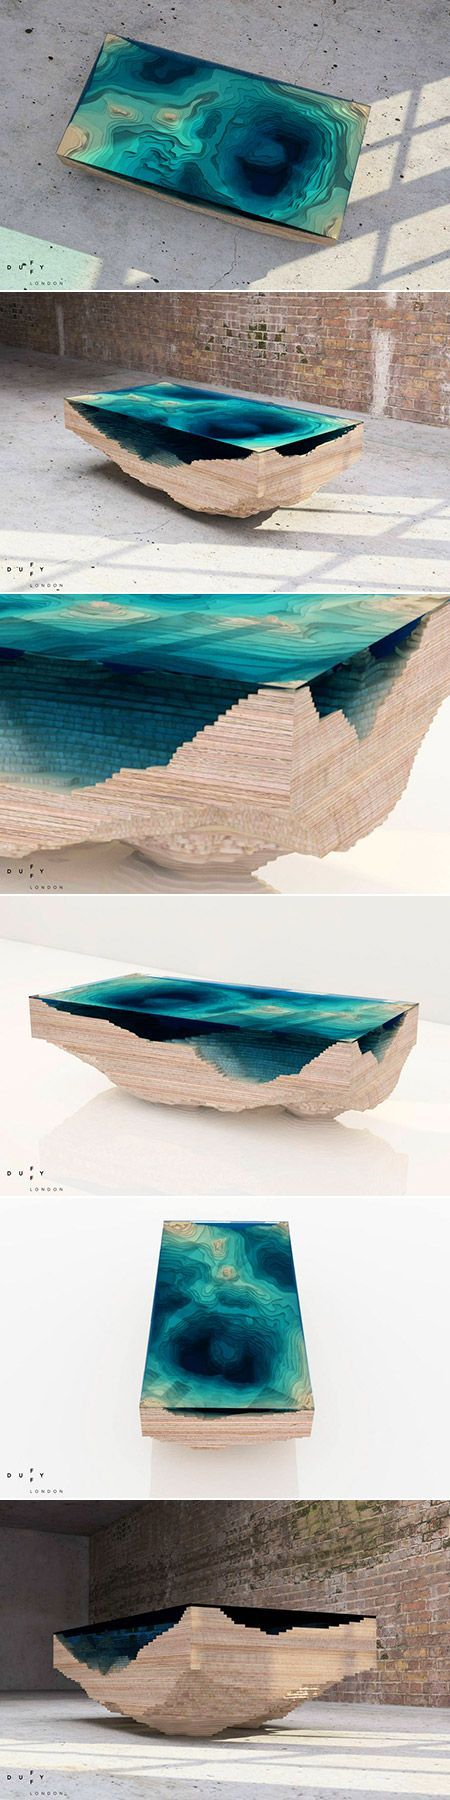 Not so long ago we wrote about the beautiful river- and lake-like desks by Greg Klassen, and today we have a similar but not less stunning layered glass table design by Duffy London - the Abyss table, which is created in a way that mimics the depths of the oceans. This unique table uses multiple layers of stacked glass and wood, completing the table as a three-dimensional representation of a geological map.: